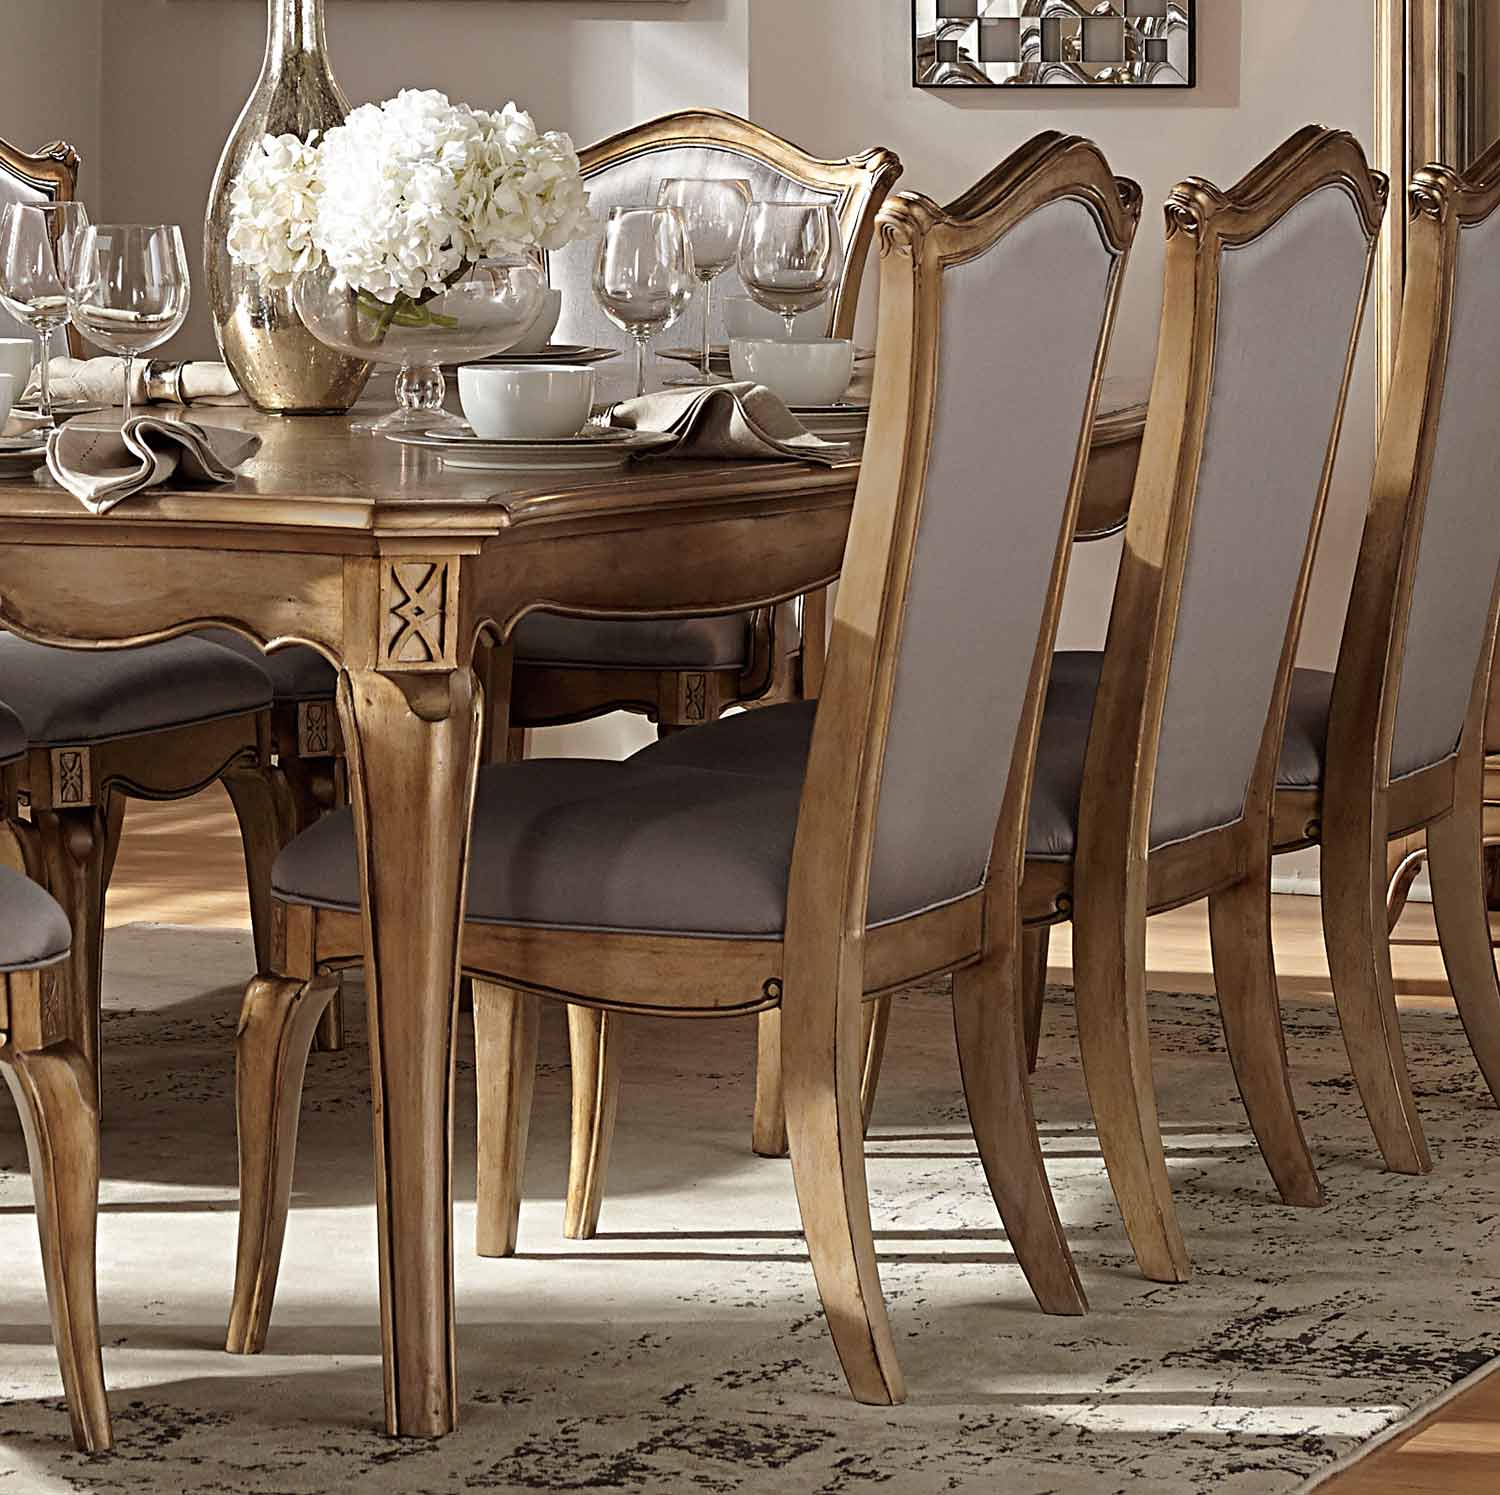 Homelegance Chambord Side Chair - Antique Gold